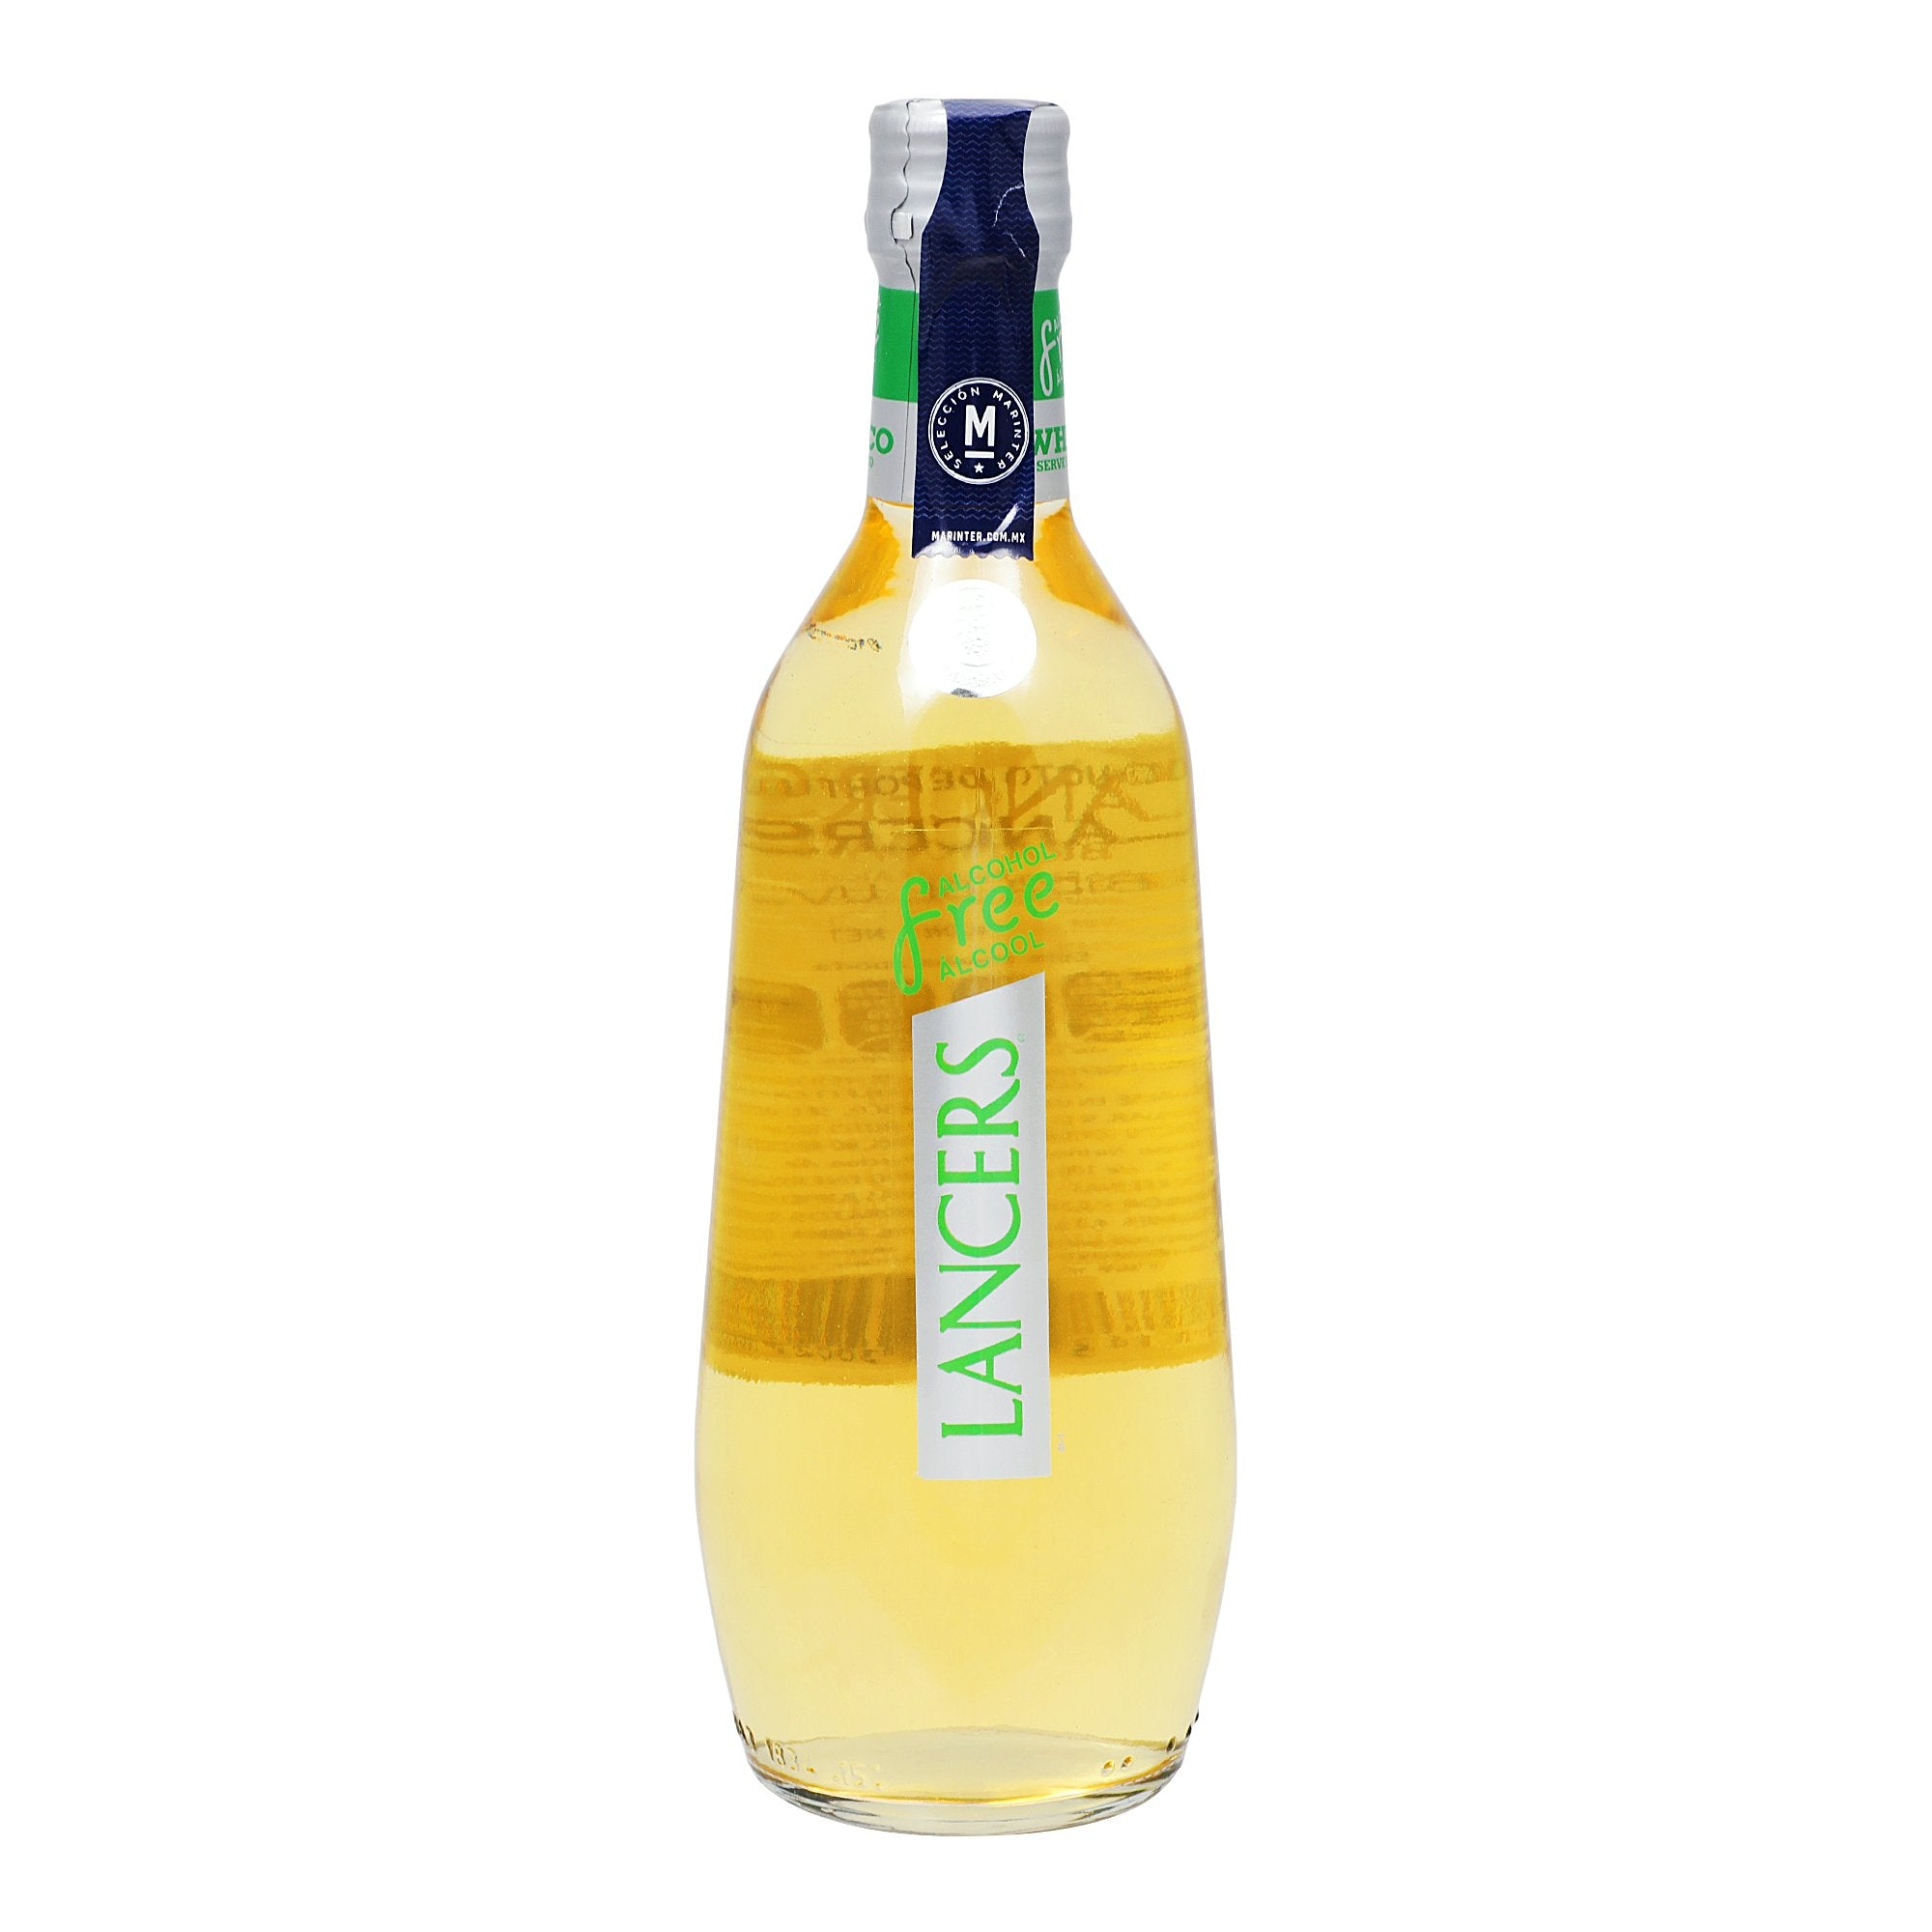 Vino Blanco - Lancers - Semi Espumoso de 750 ml - Sin Alcohol - Portugal